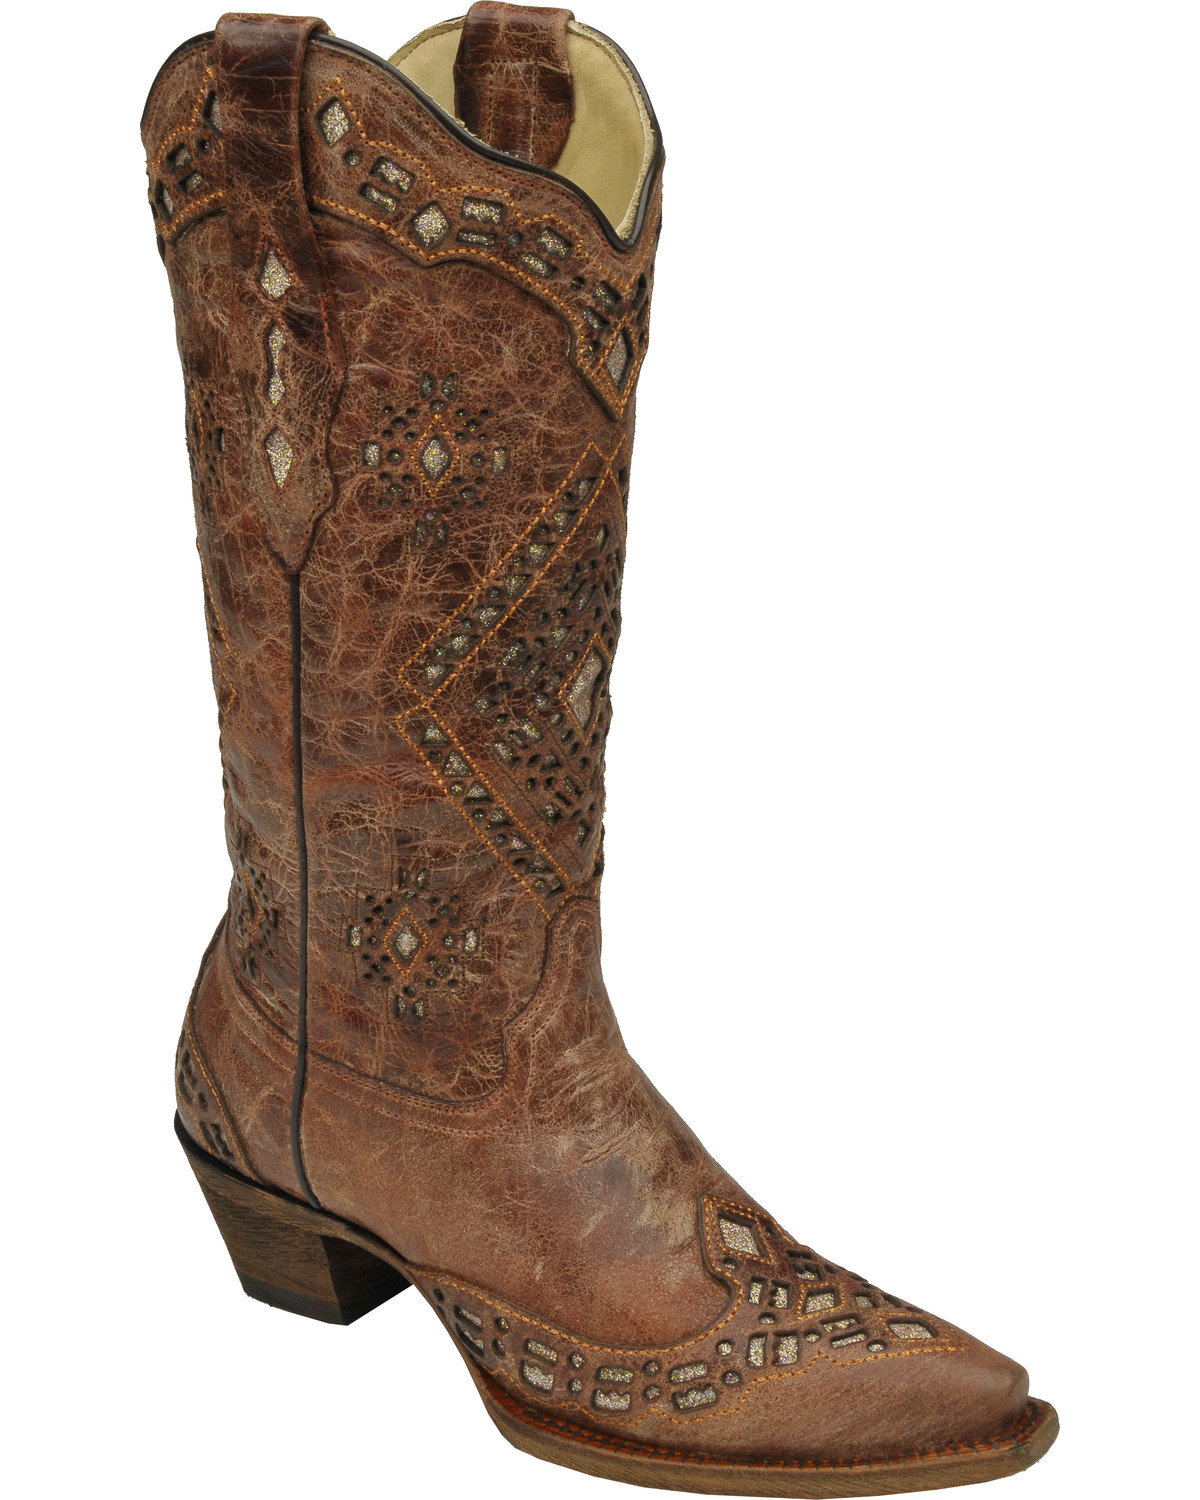 Corral Glitter Inlay Cowgirl Boots Snip Toe Country Outfitter